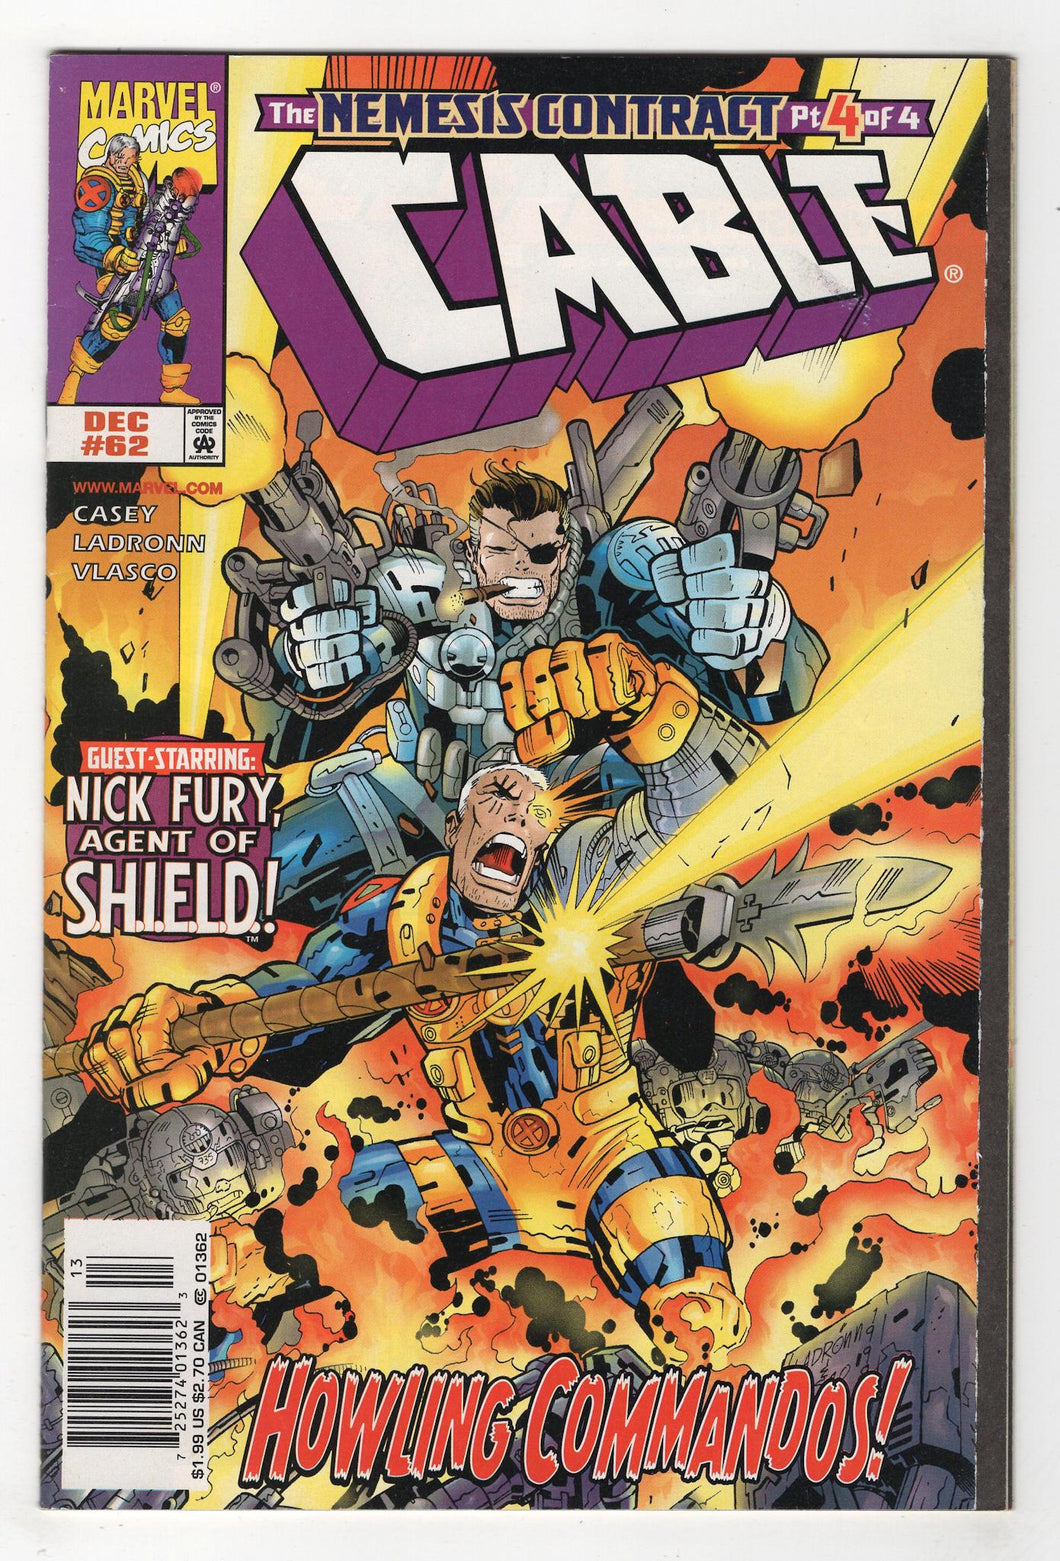 Cable #62 Cover Front